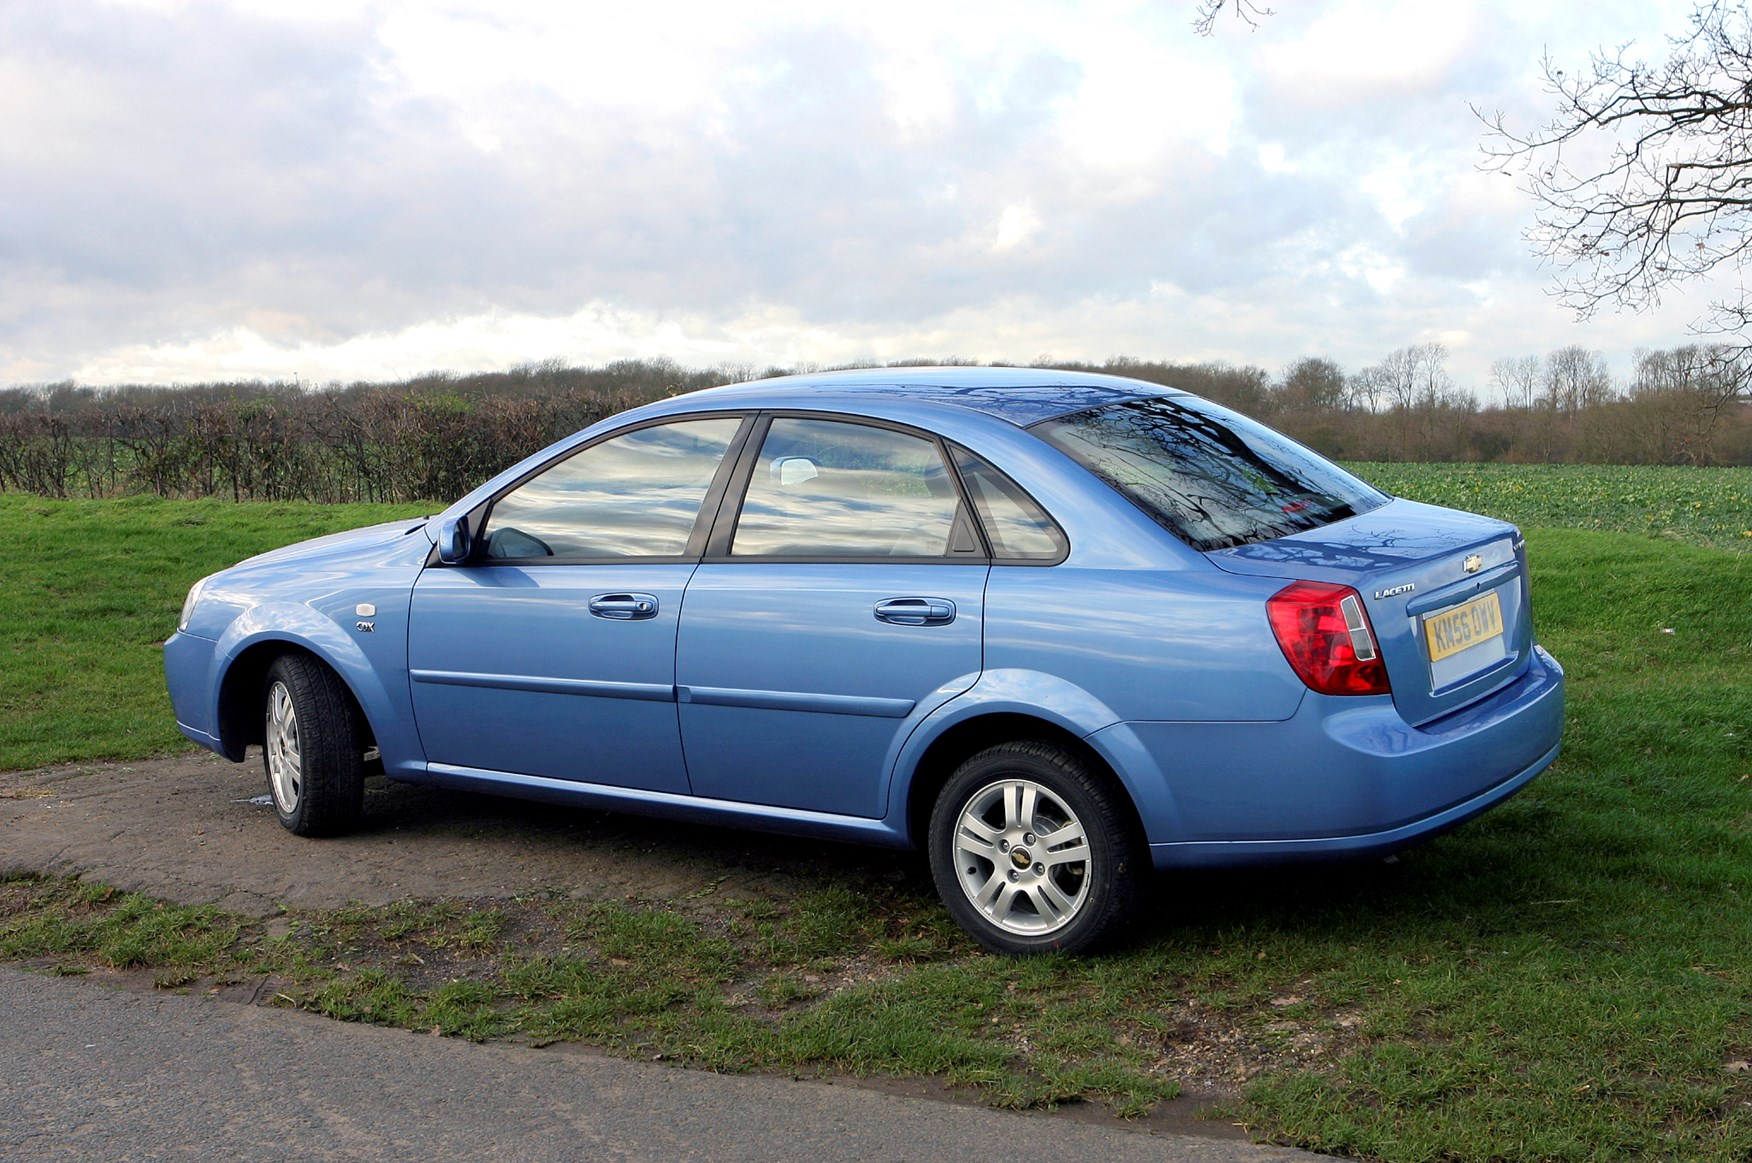 Used Chevrolet Lacetti Saloon (2005 - 2006) Review | Parkers